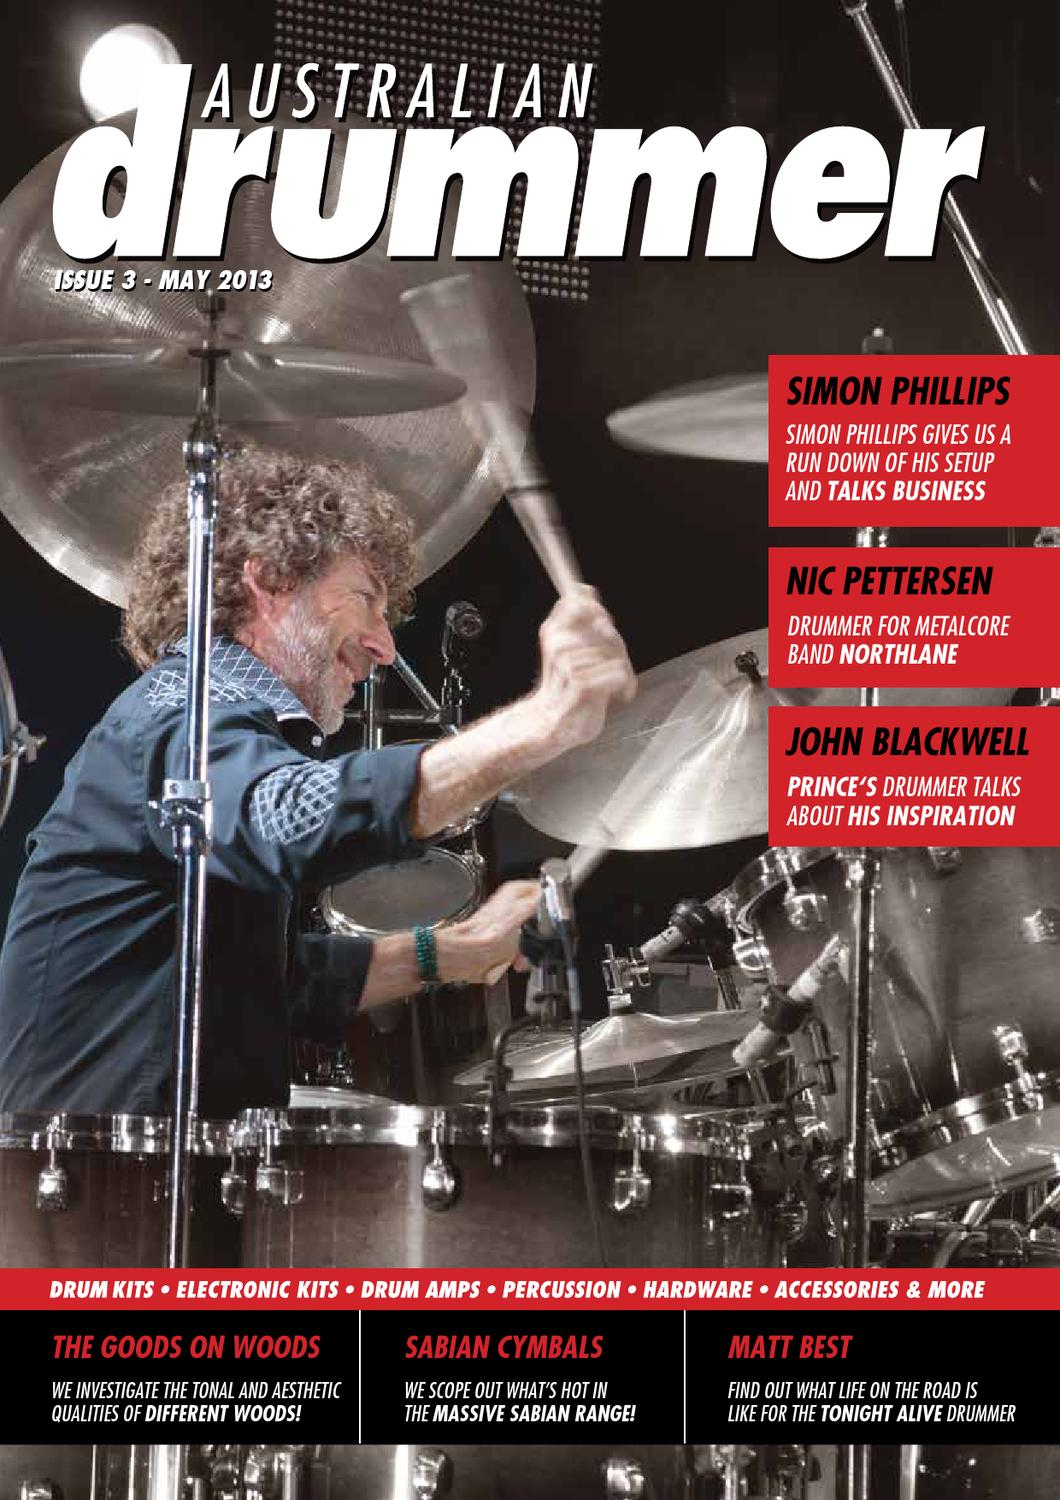 Australian Drummer - Issue 3 by Australis Music - issuu